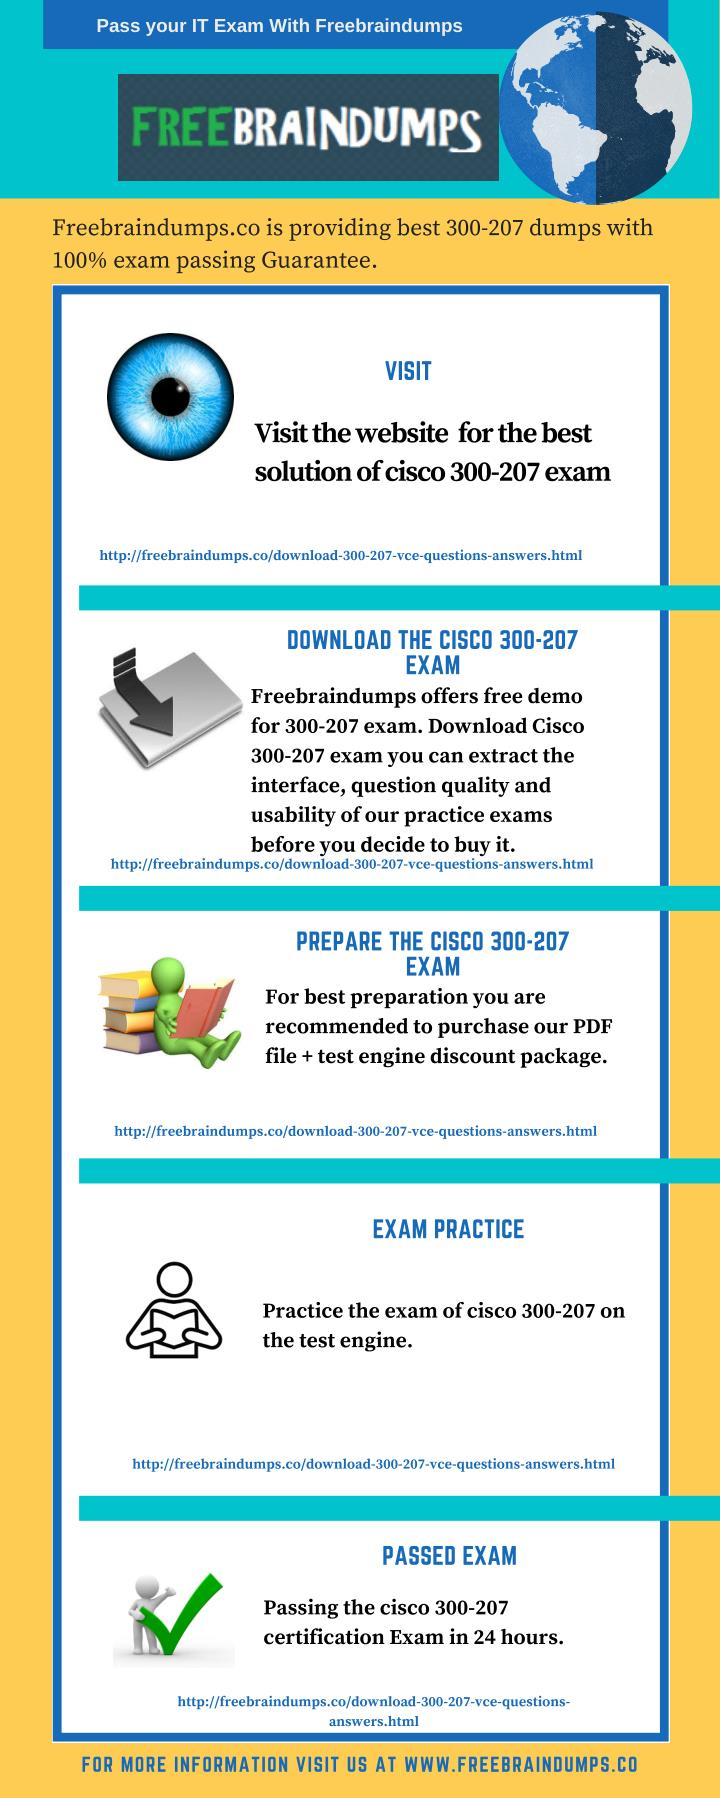 Pass your IT Exam With Freebraindumps